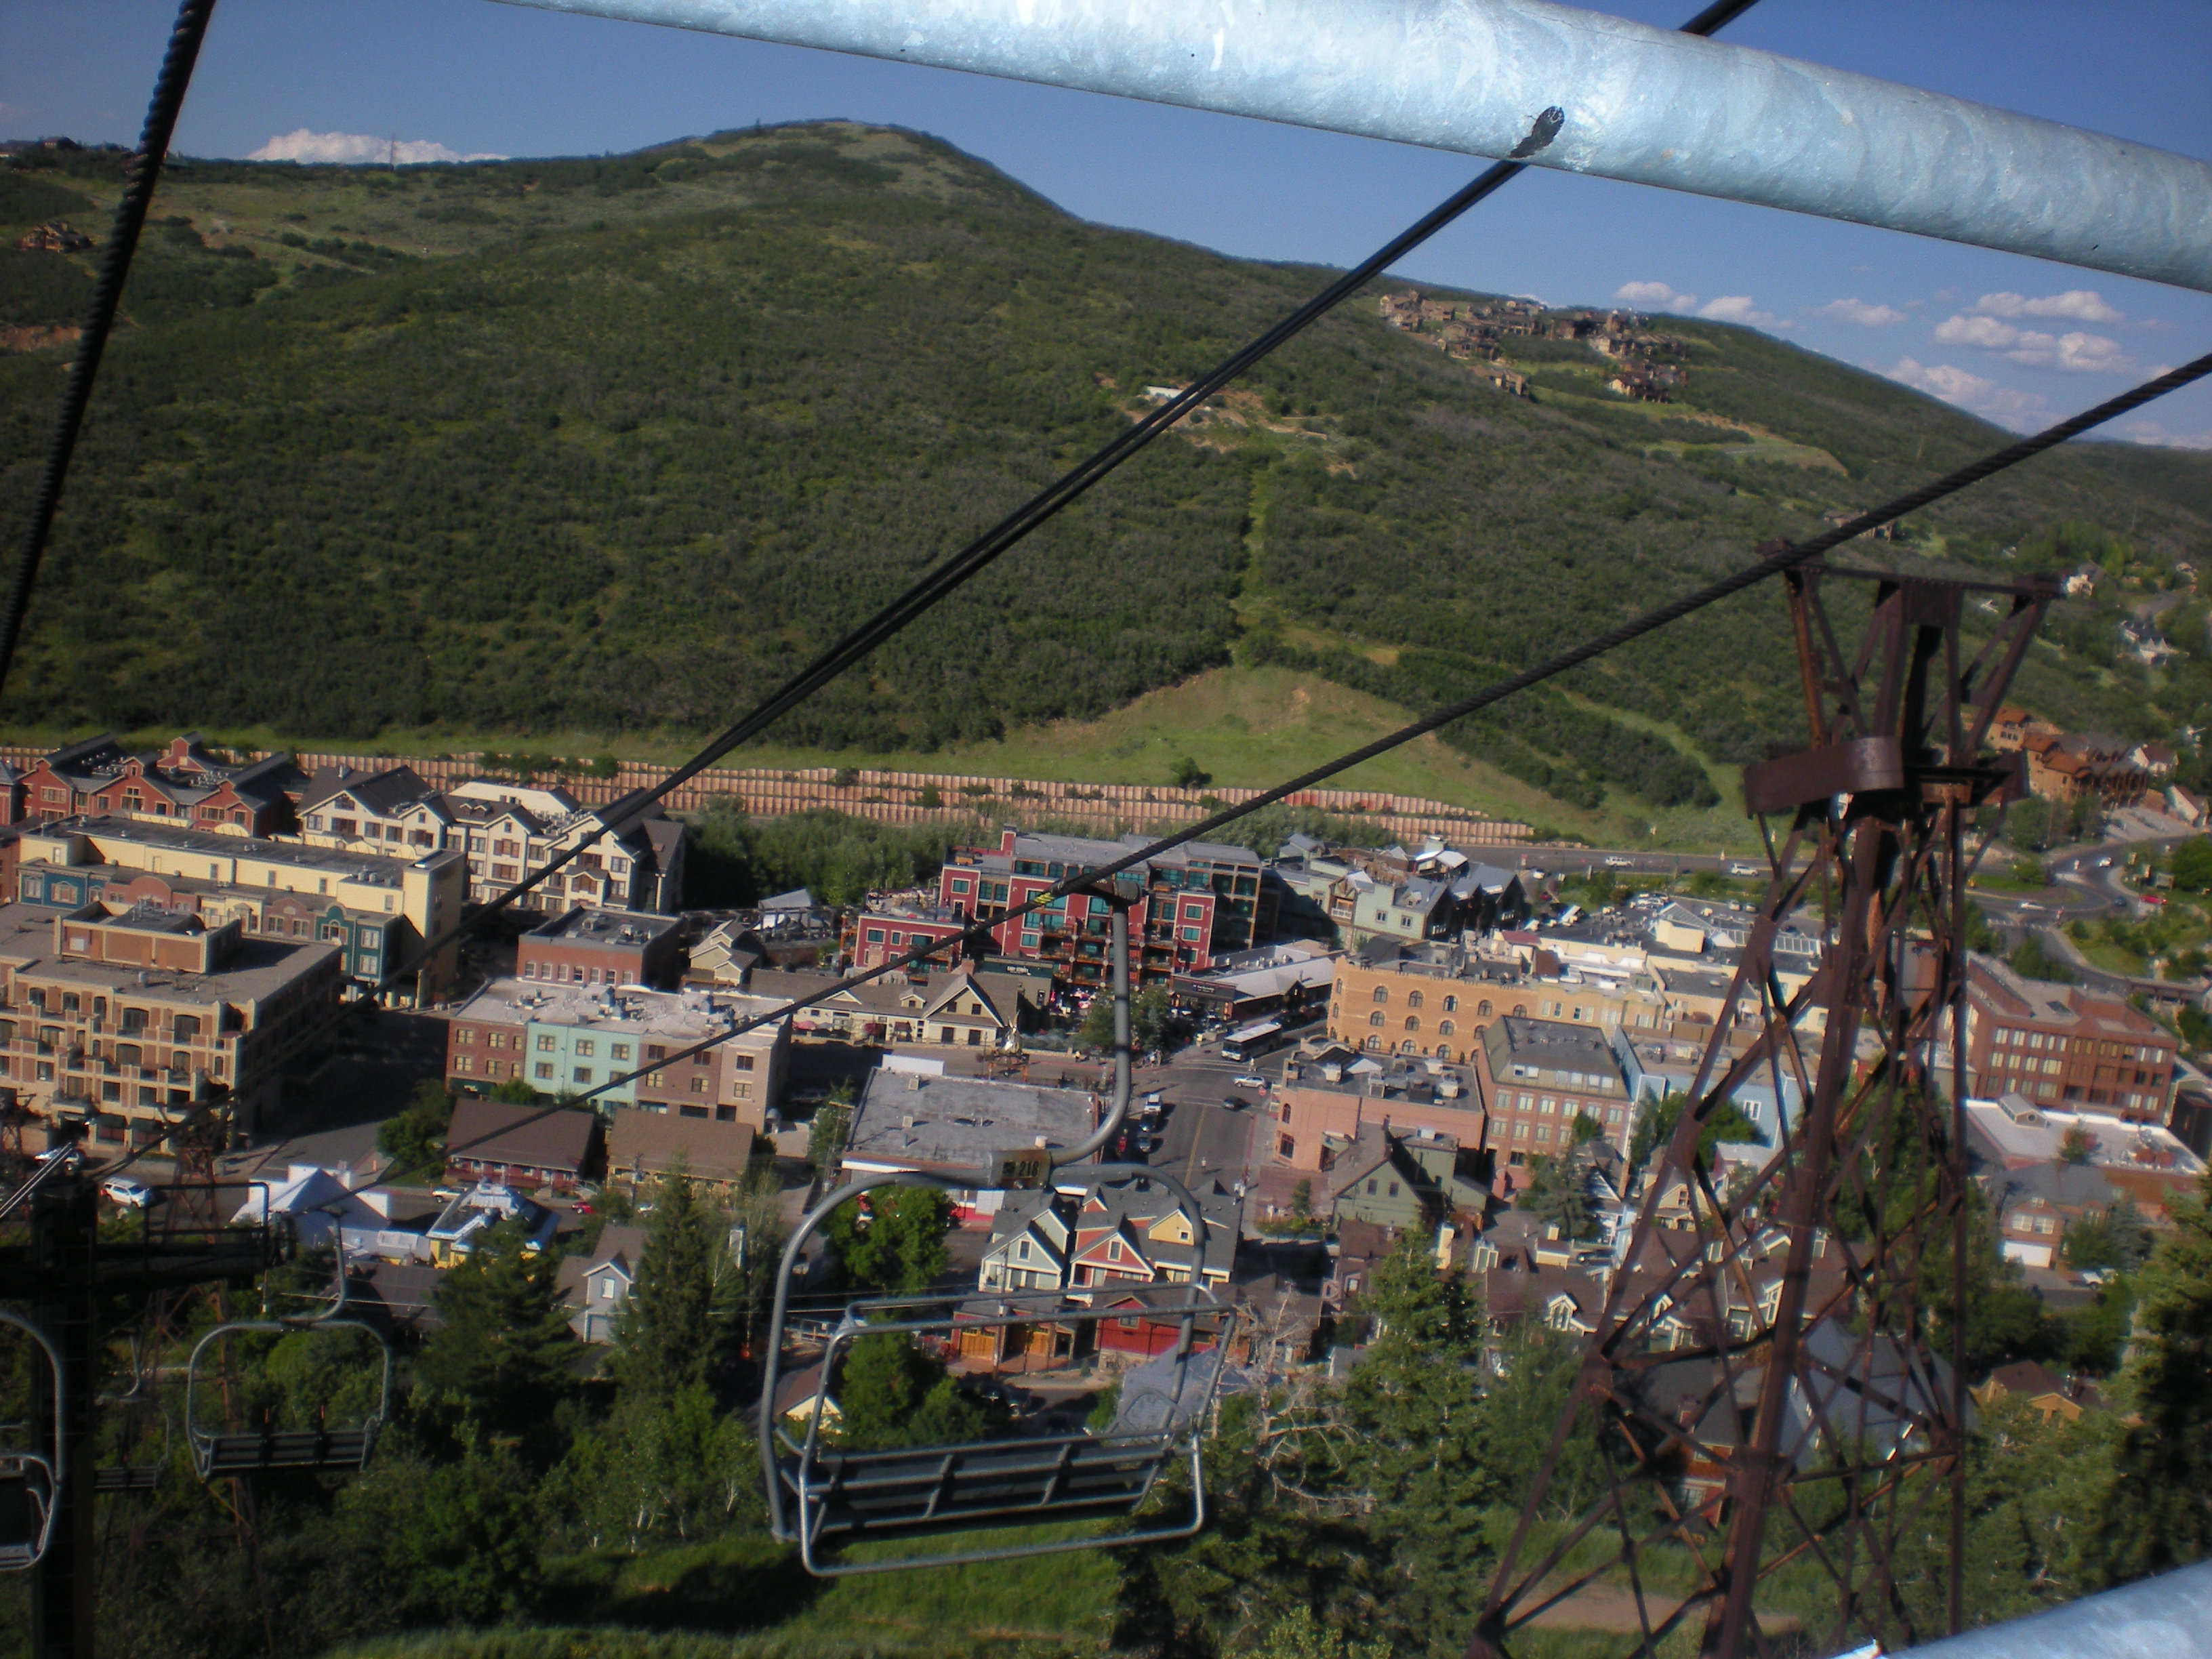 Town Lift to Main Street